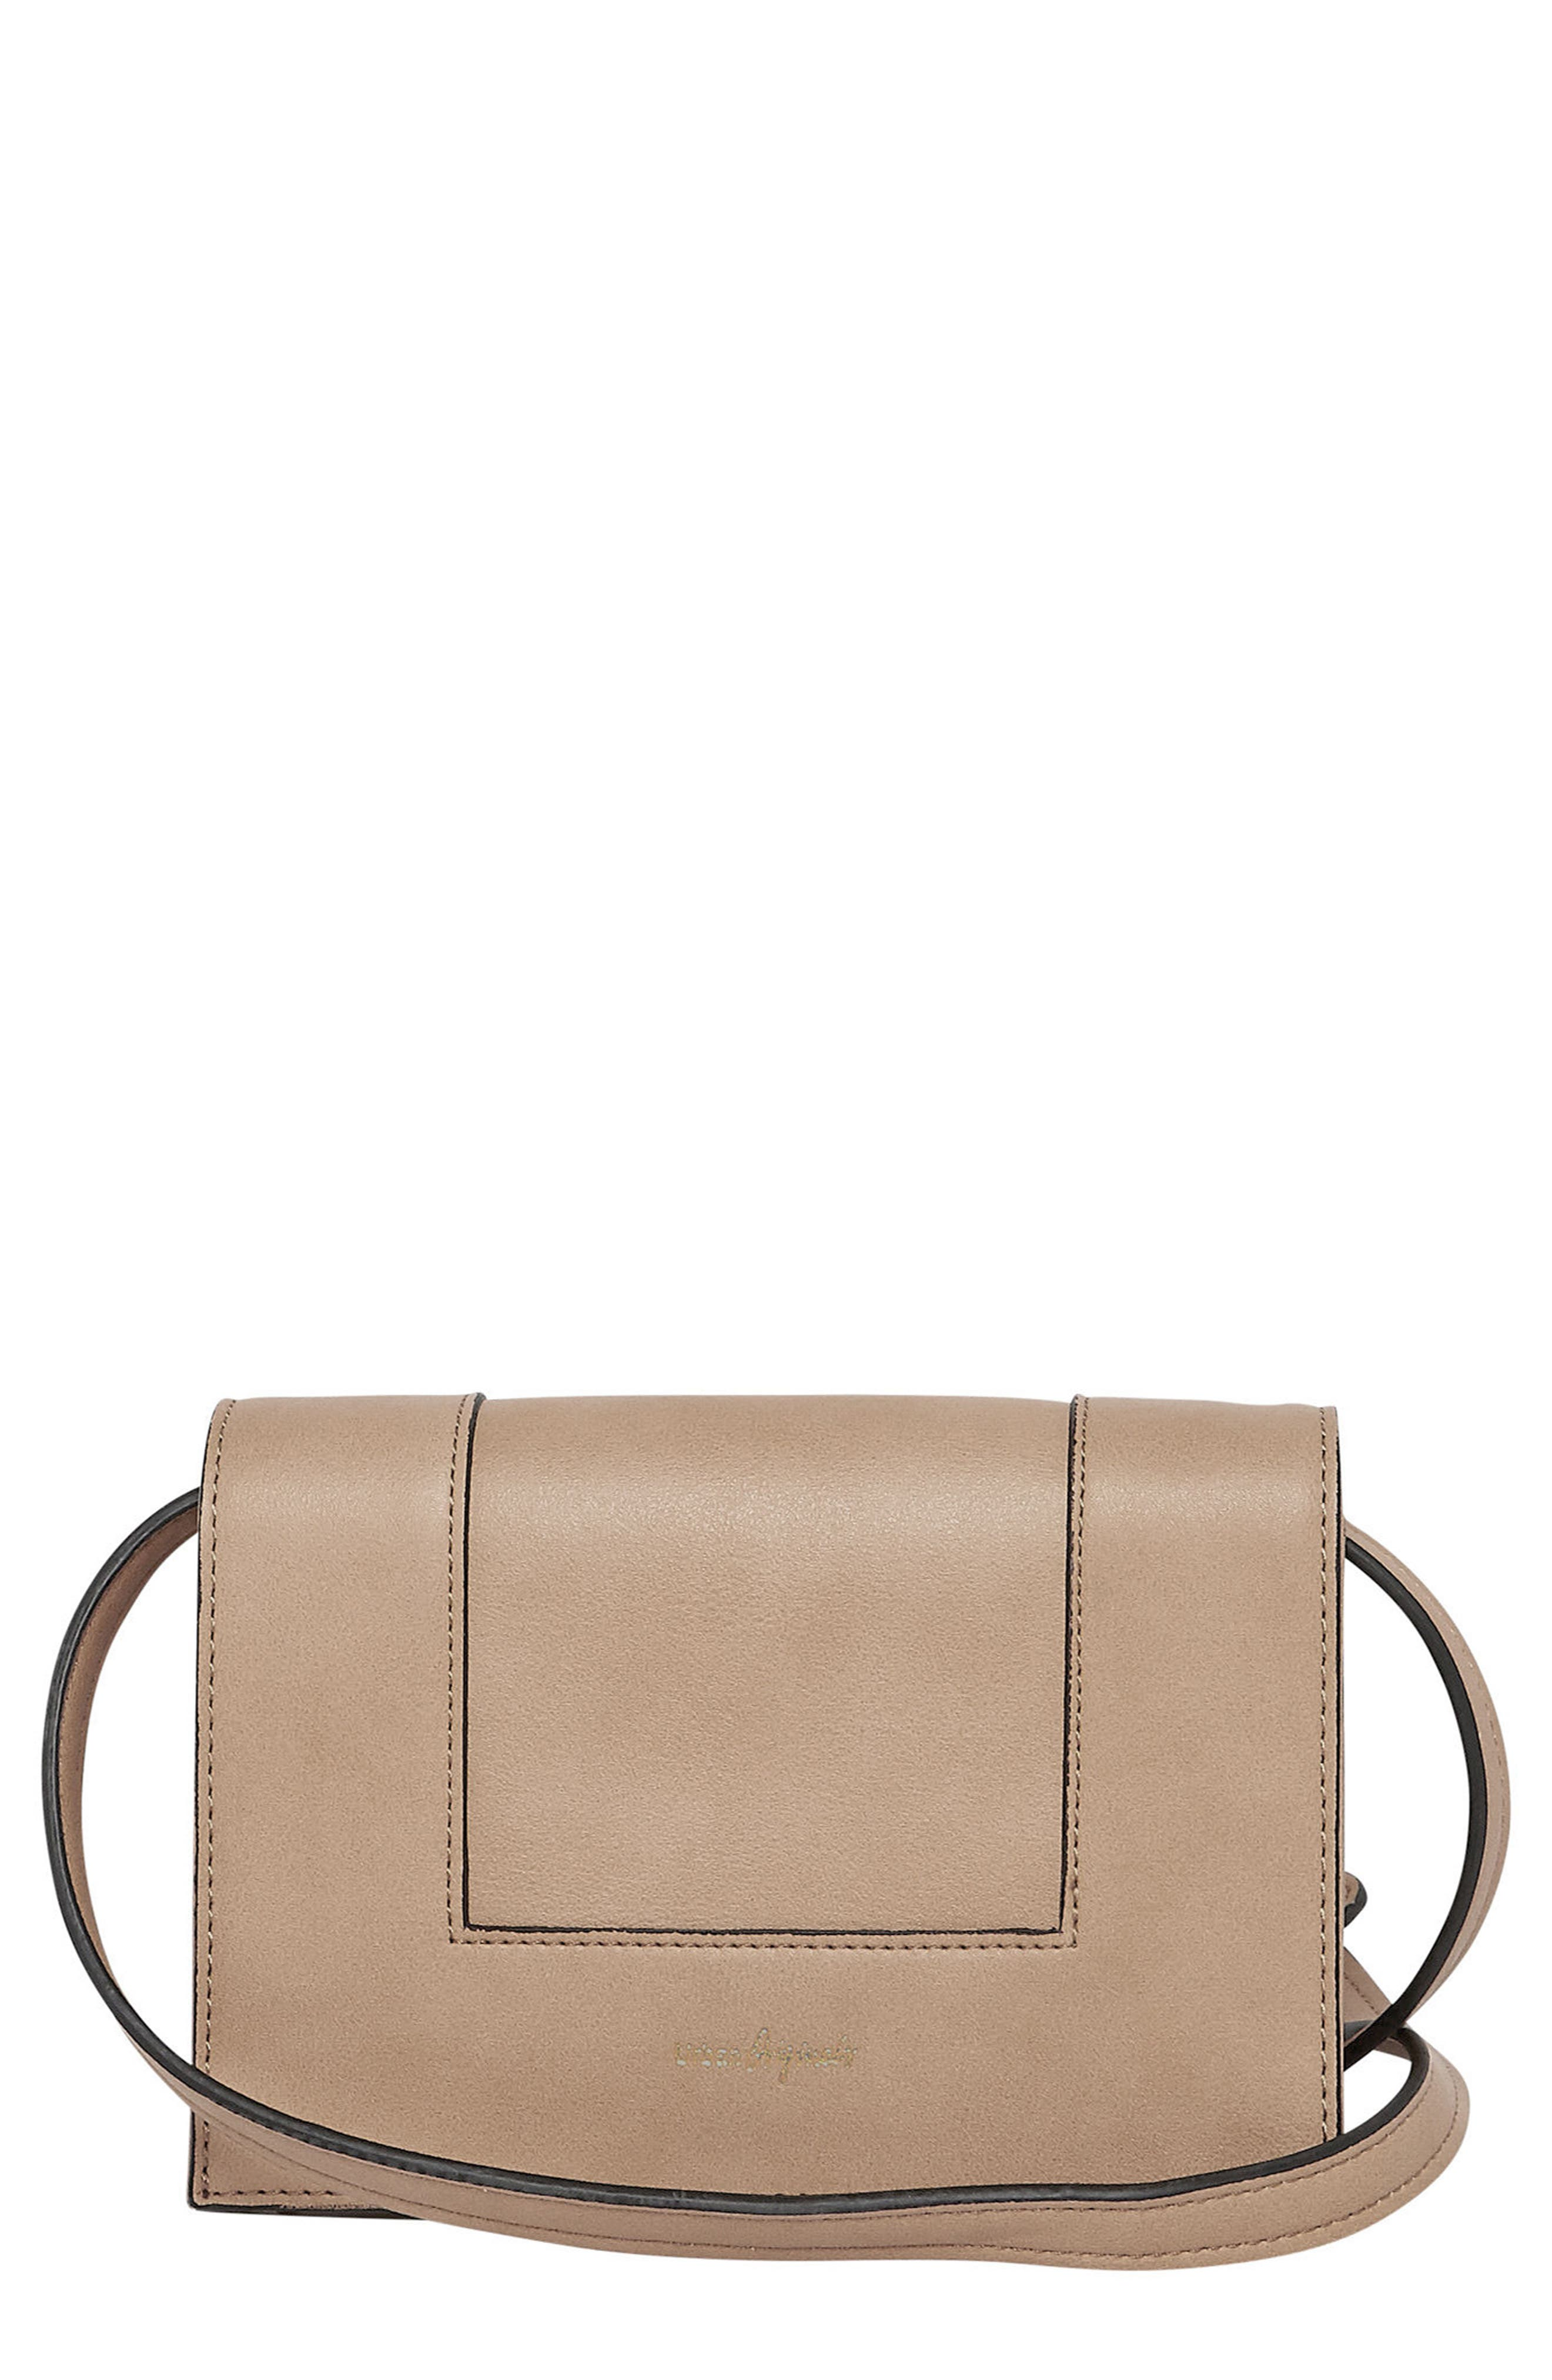 Urban Originals Infinity Vegan Leather Crossbody Bag